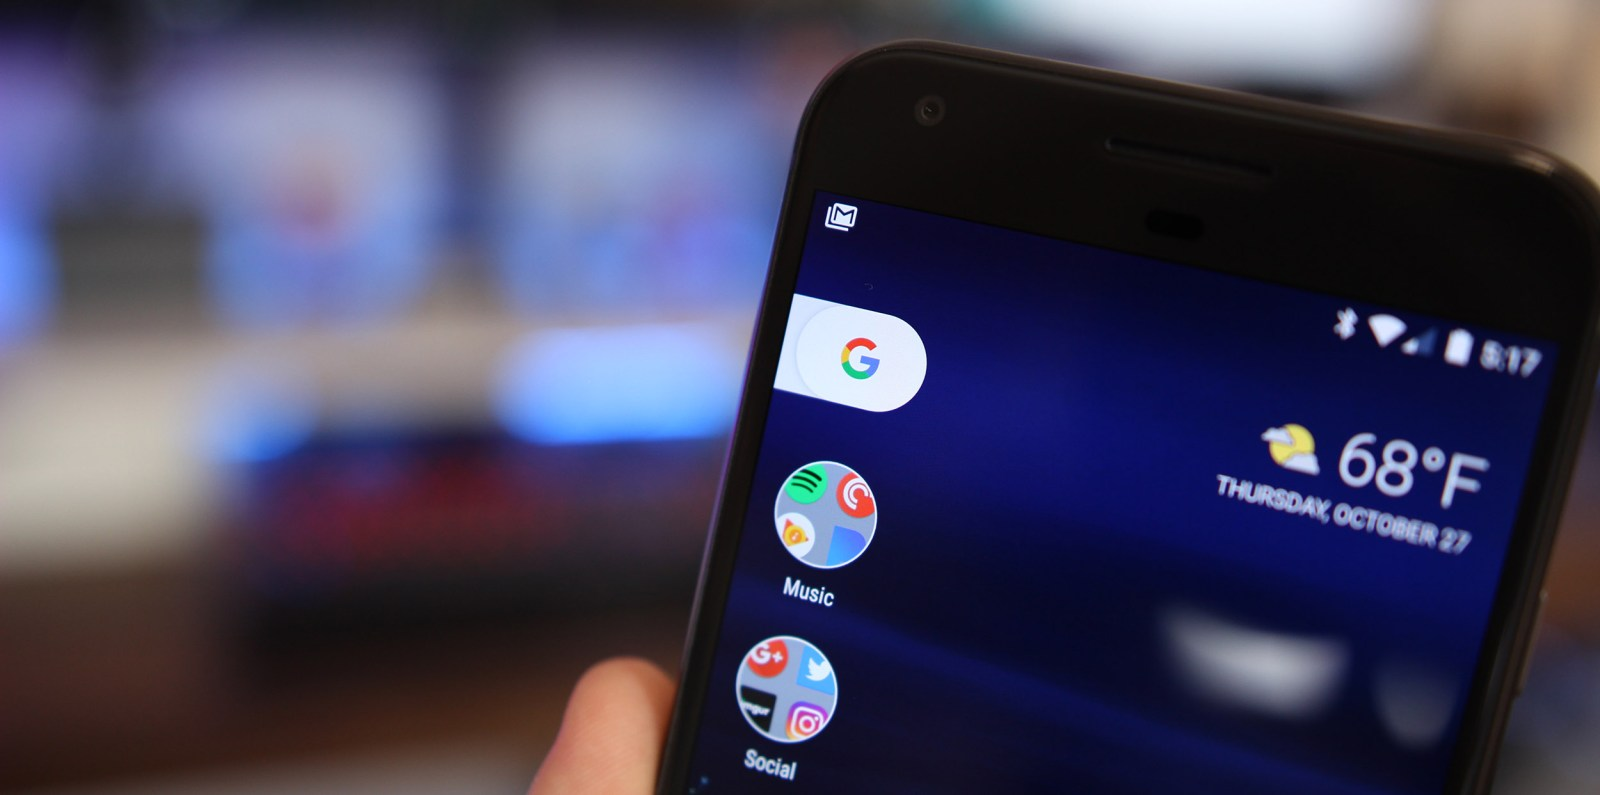 Pixel Launcher w/ Search 'Pill' and Google Now panel ported by developers to any device